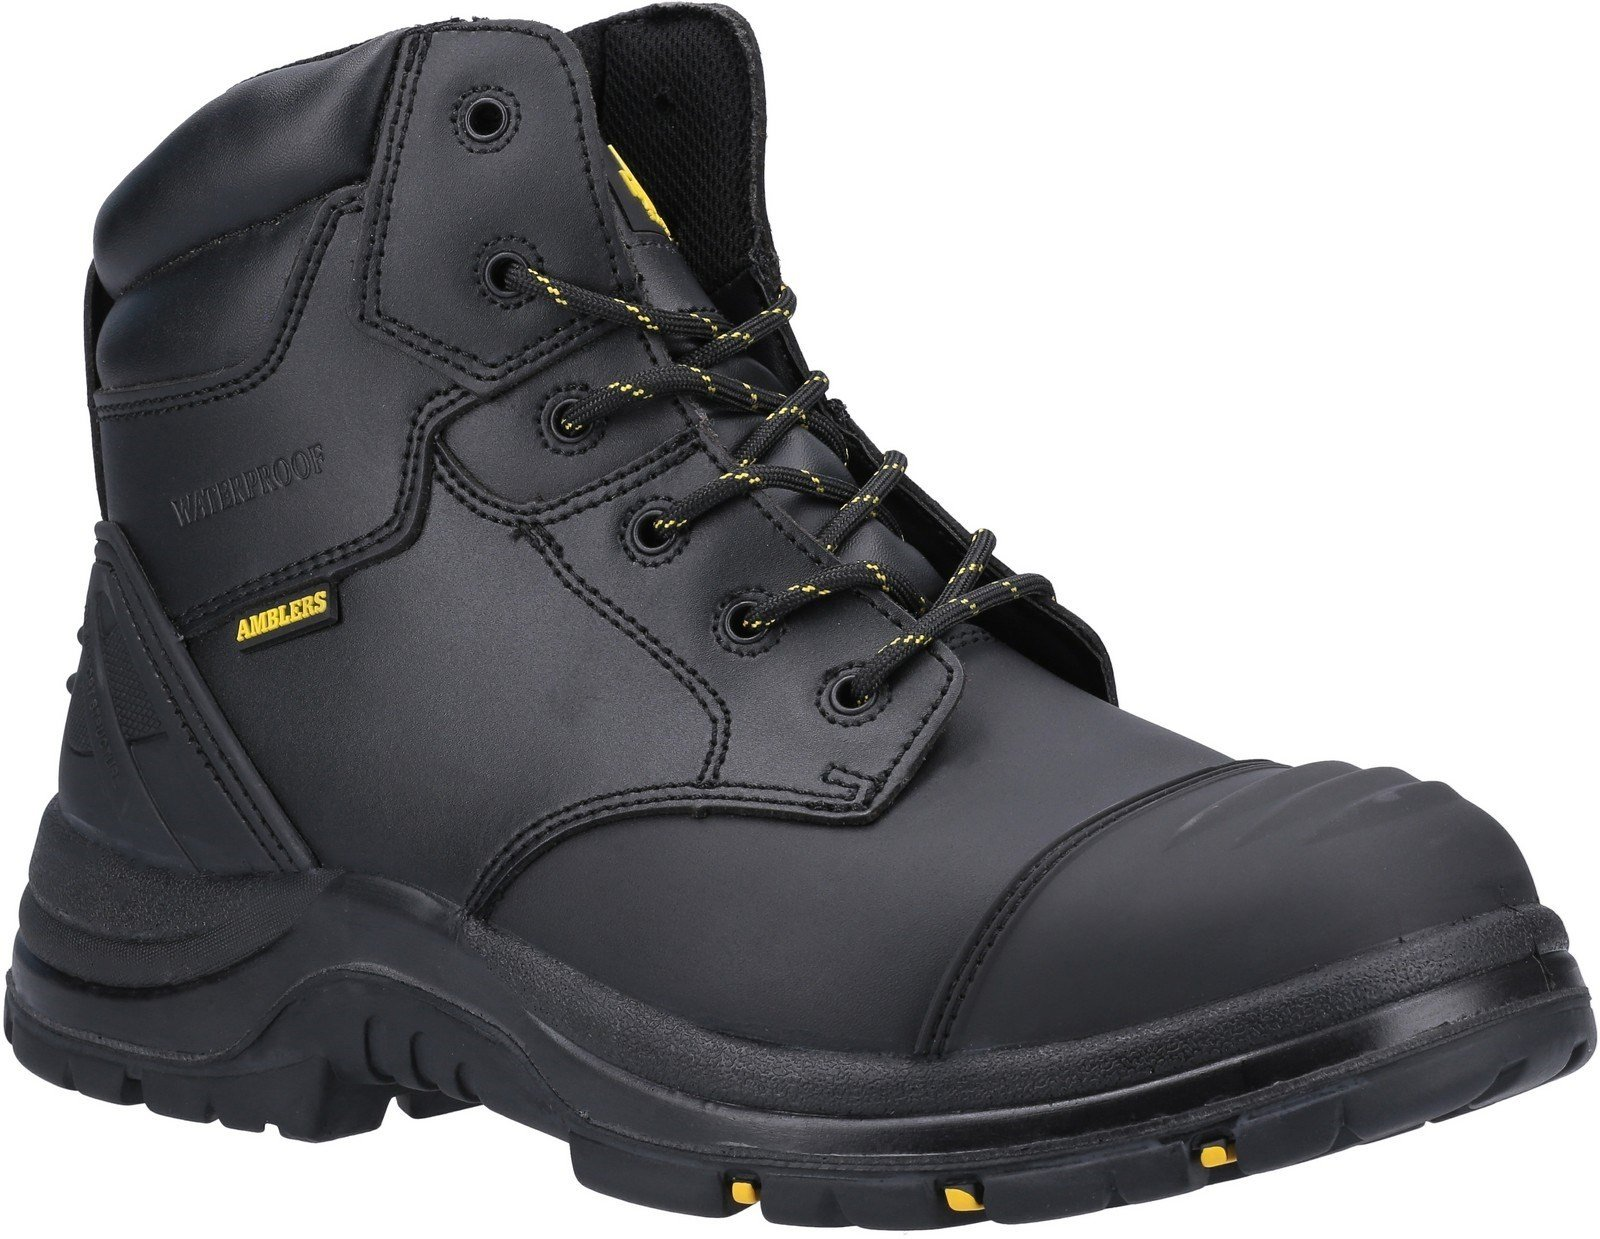 Amblers Unisex Safety Winsford Lace Up Waterproof Boot Black 29734 - Black 4